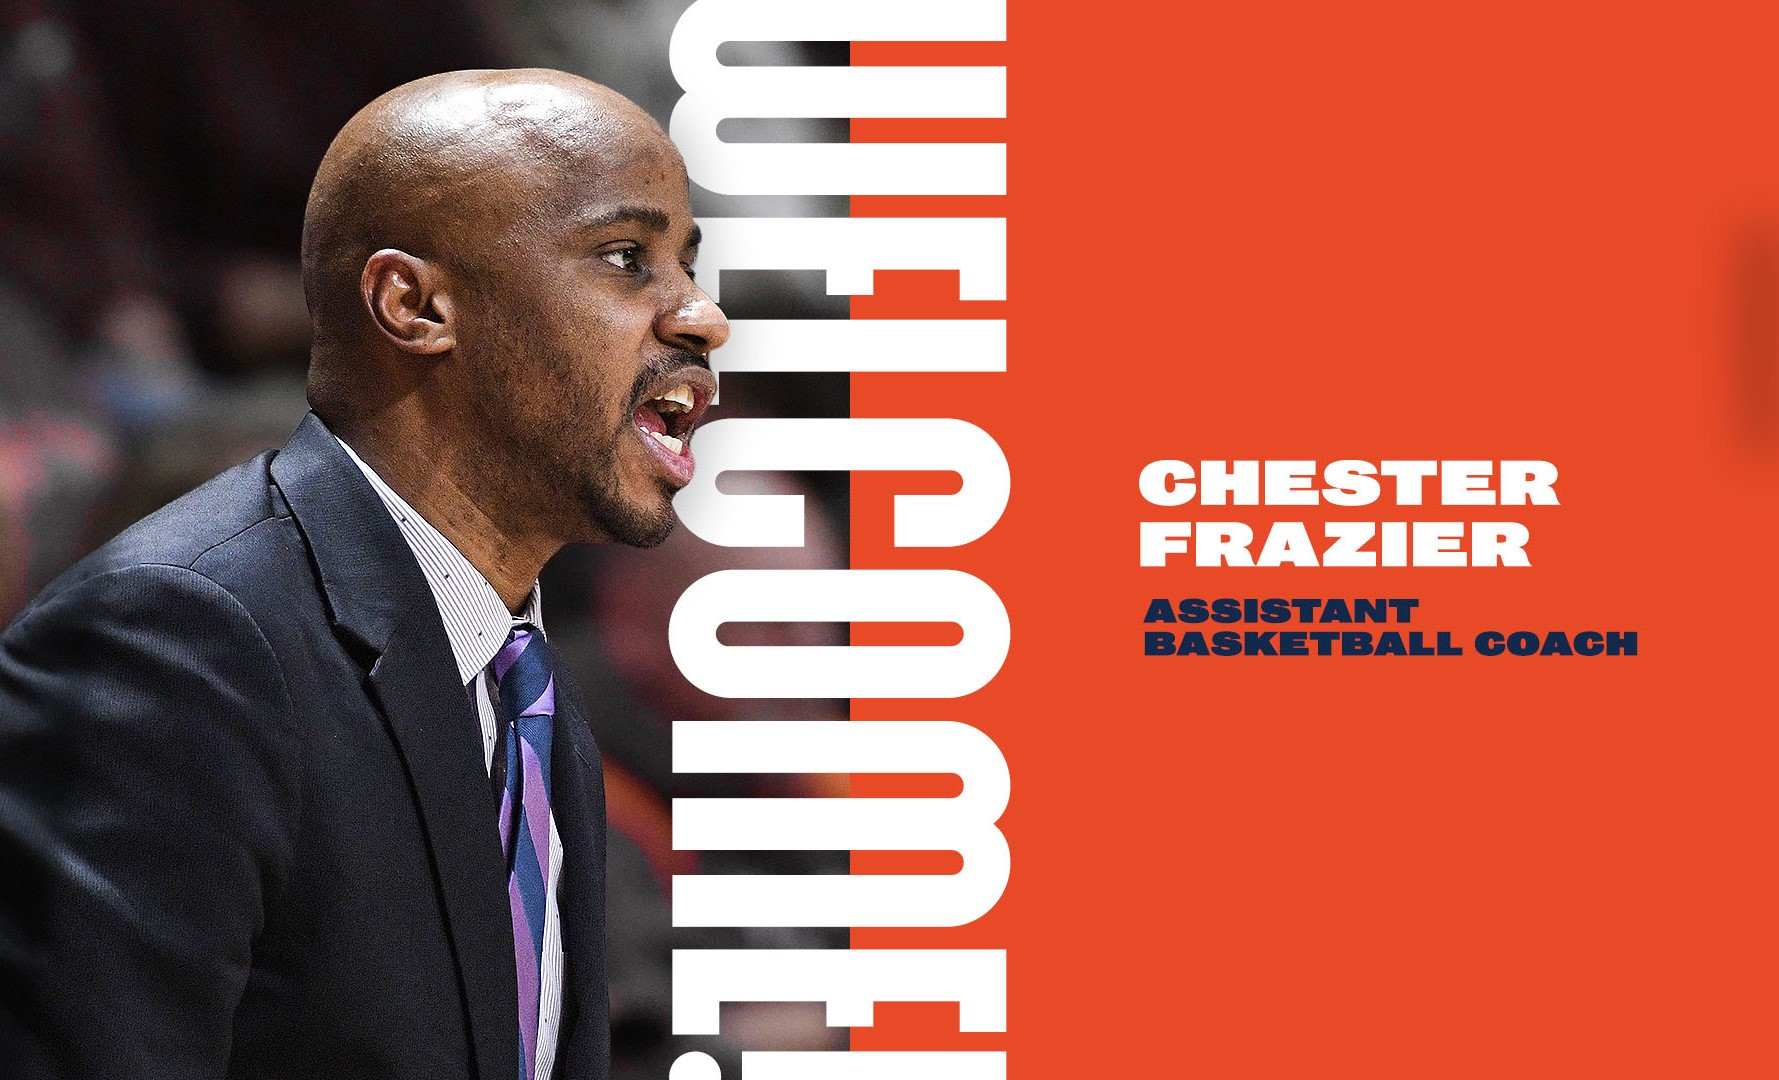 New assistant coach Chester Frazier's recruiting connections